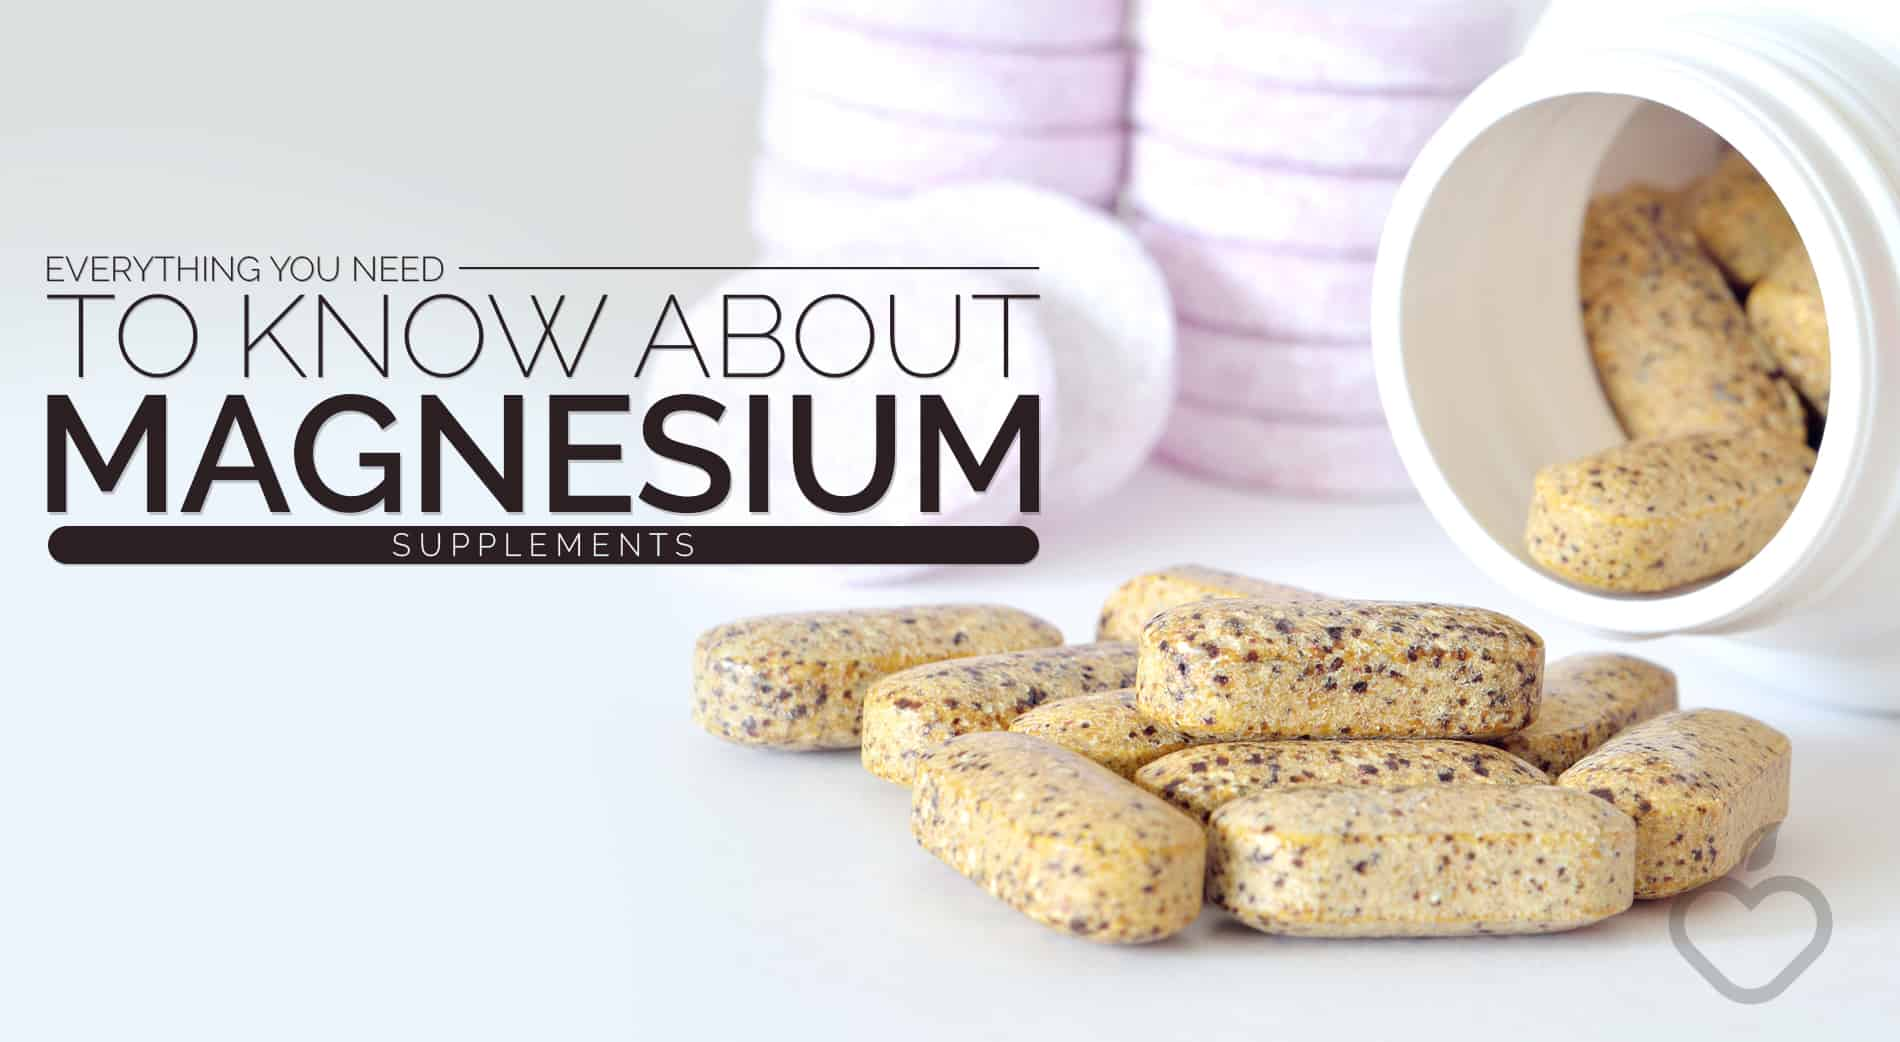 Magnesium Image Design 1 - Everything You Need to Know About Magnesium Supplements